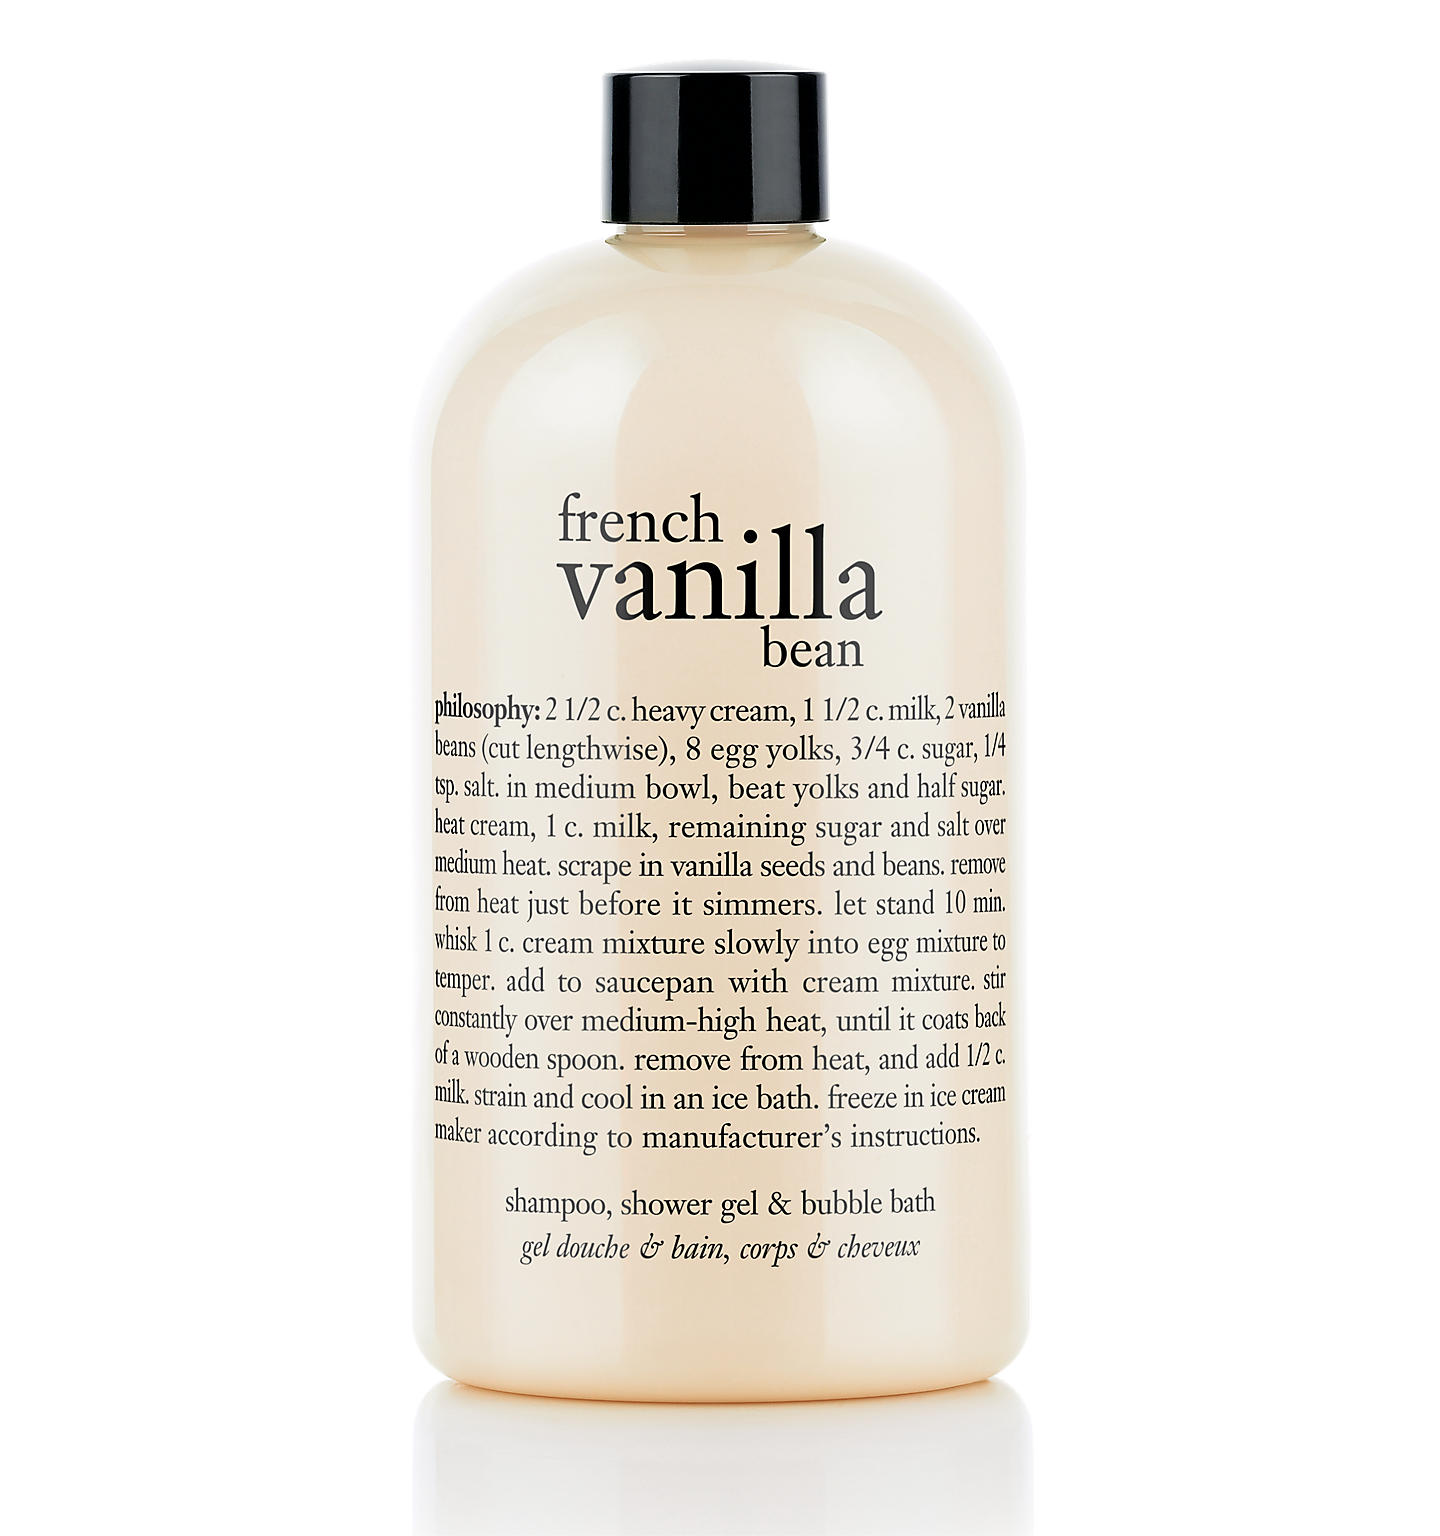 French Vanilla Bean Shampoo Shower Gel Amp Bubble Bath